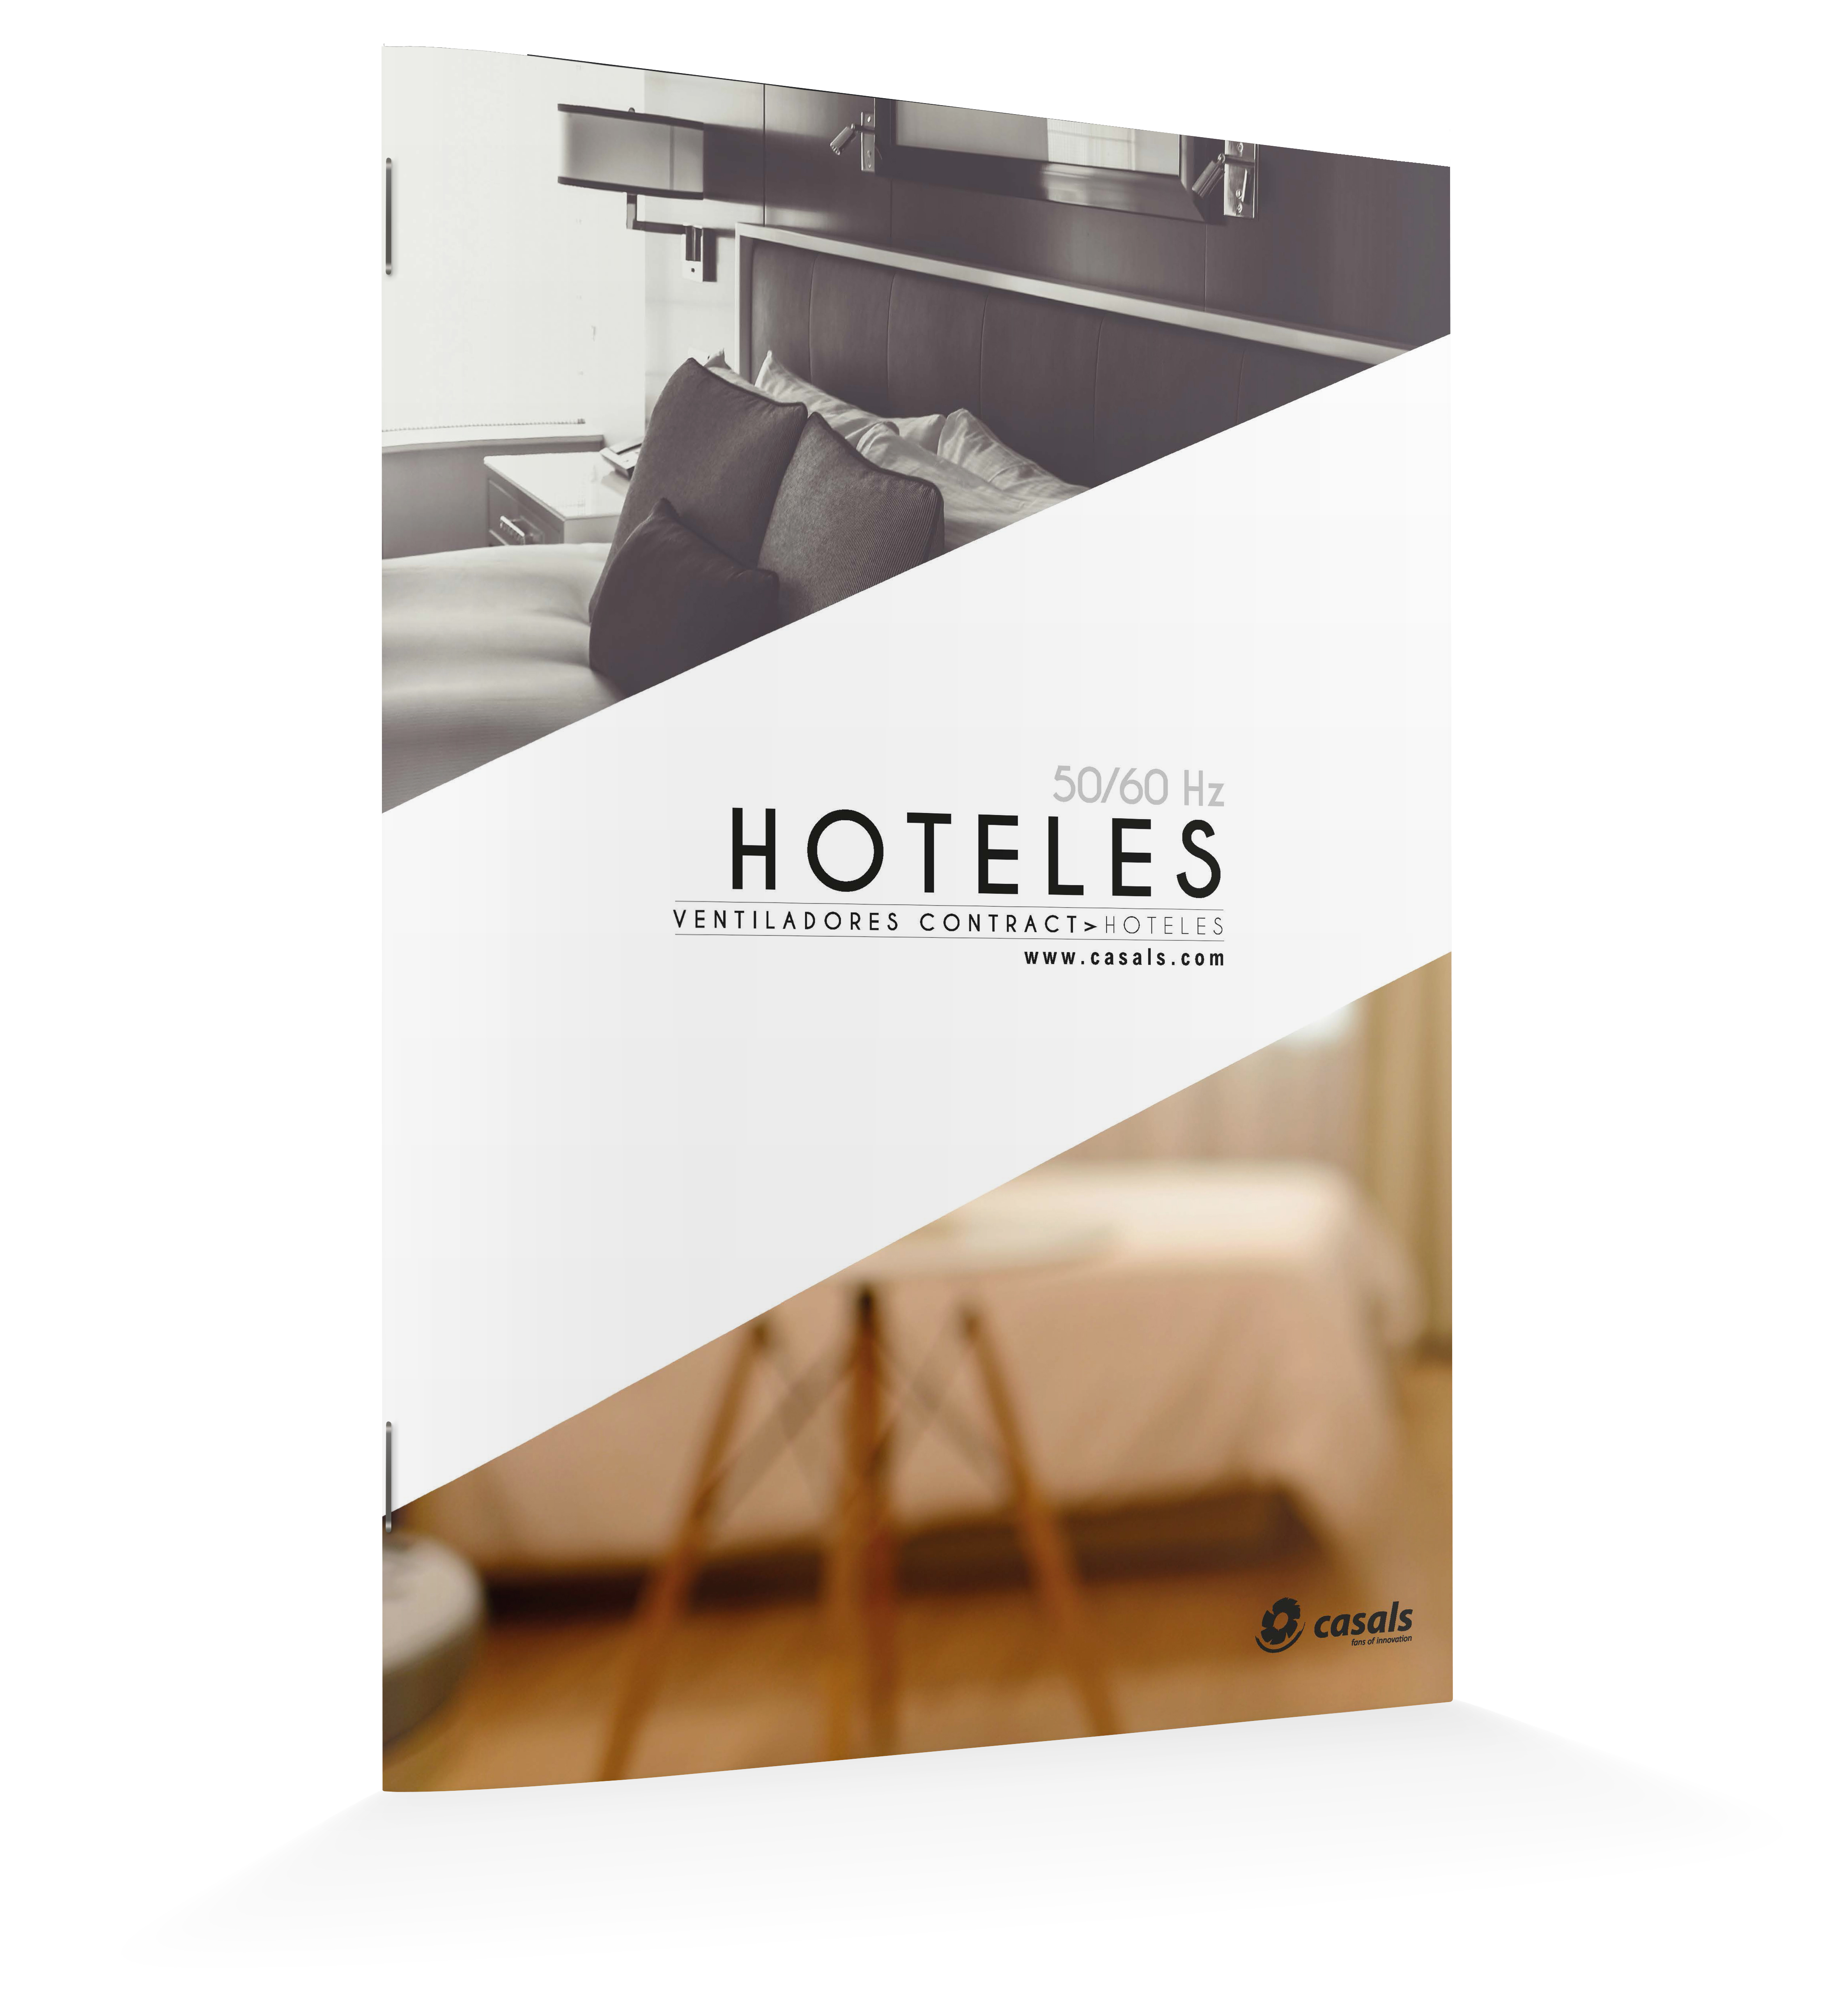 Hoteles contract